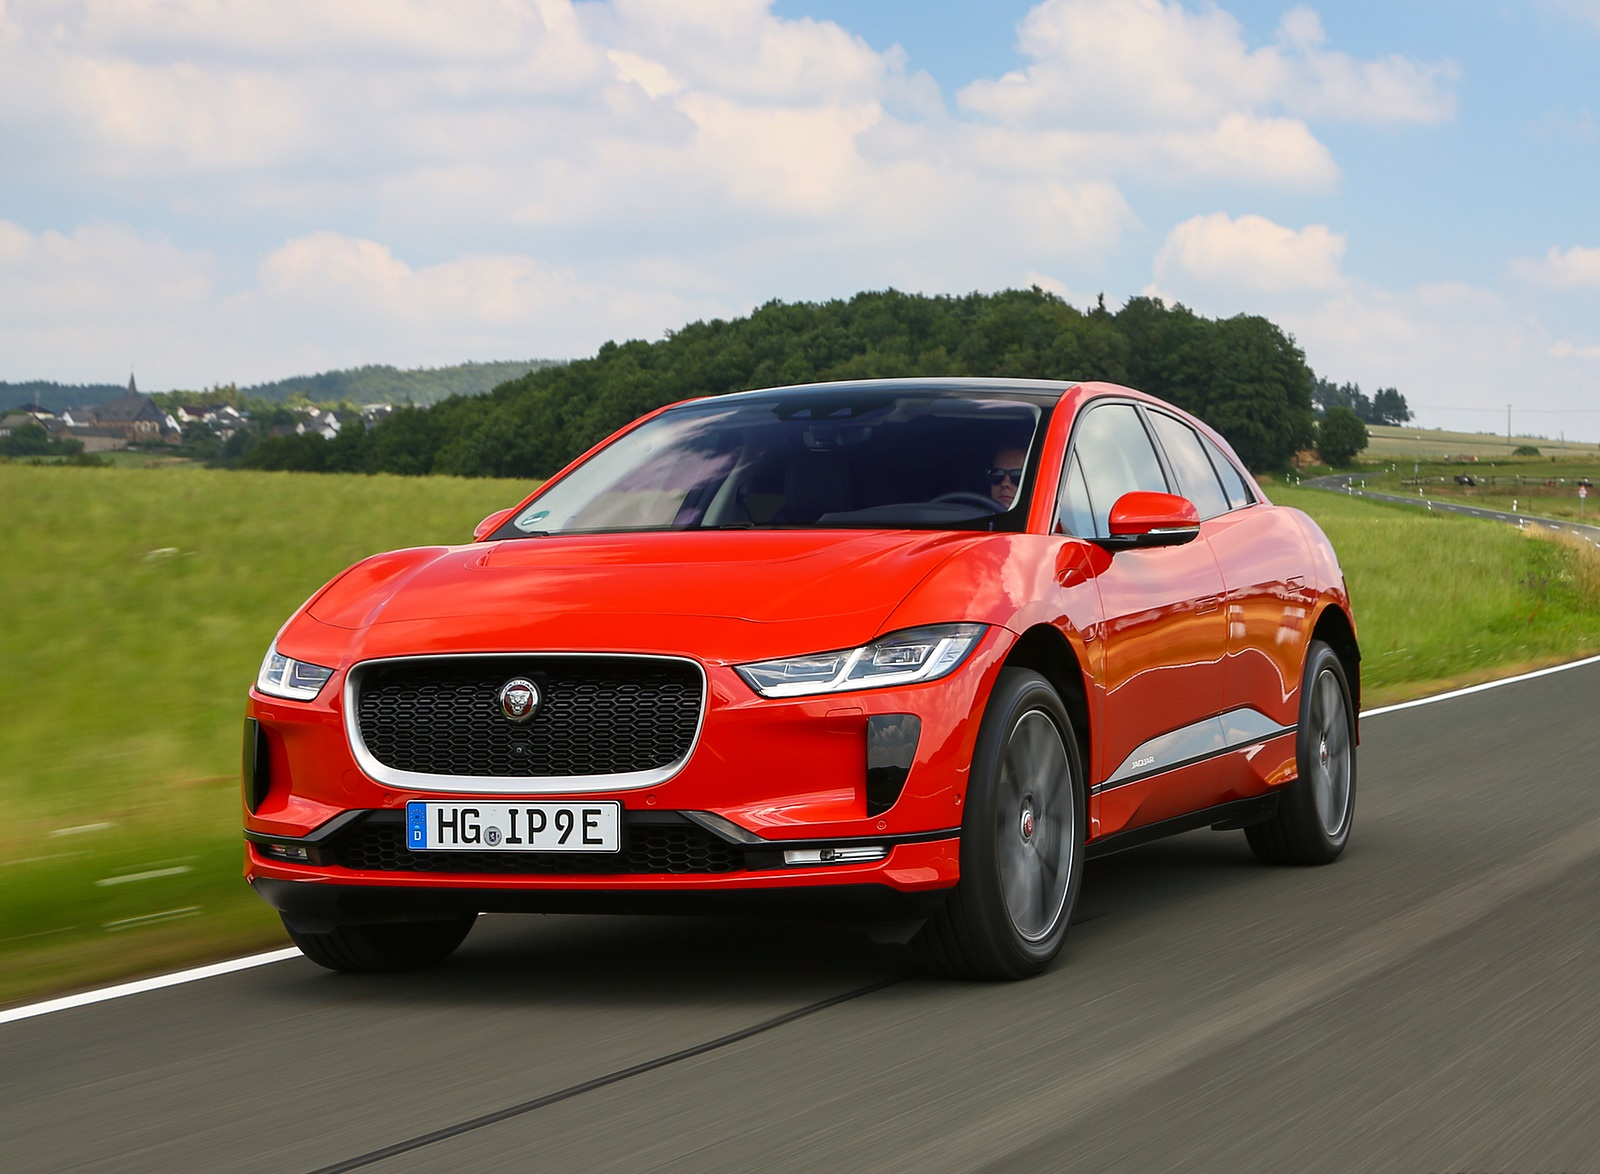 2019 Jaguar I-PACE EV400 AWD HSE First Edition (Color: Photon Red) Front Three-Quarter Wallpapers #36 of 192